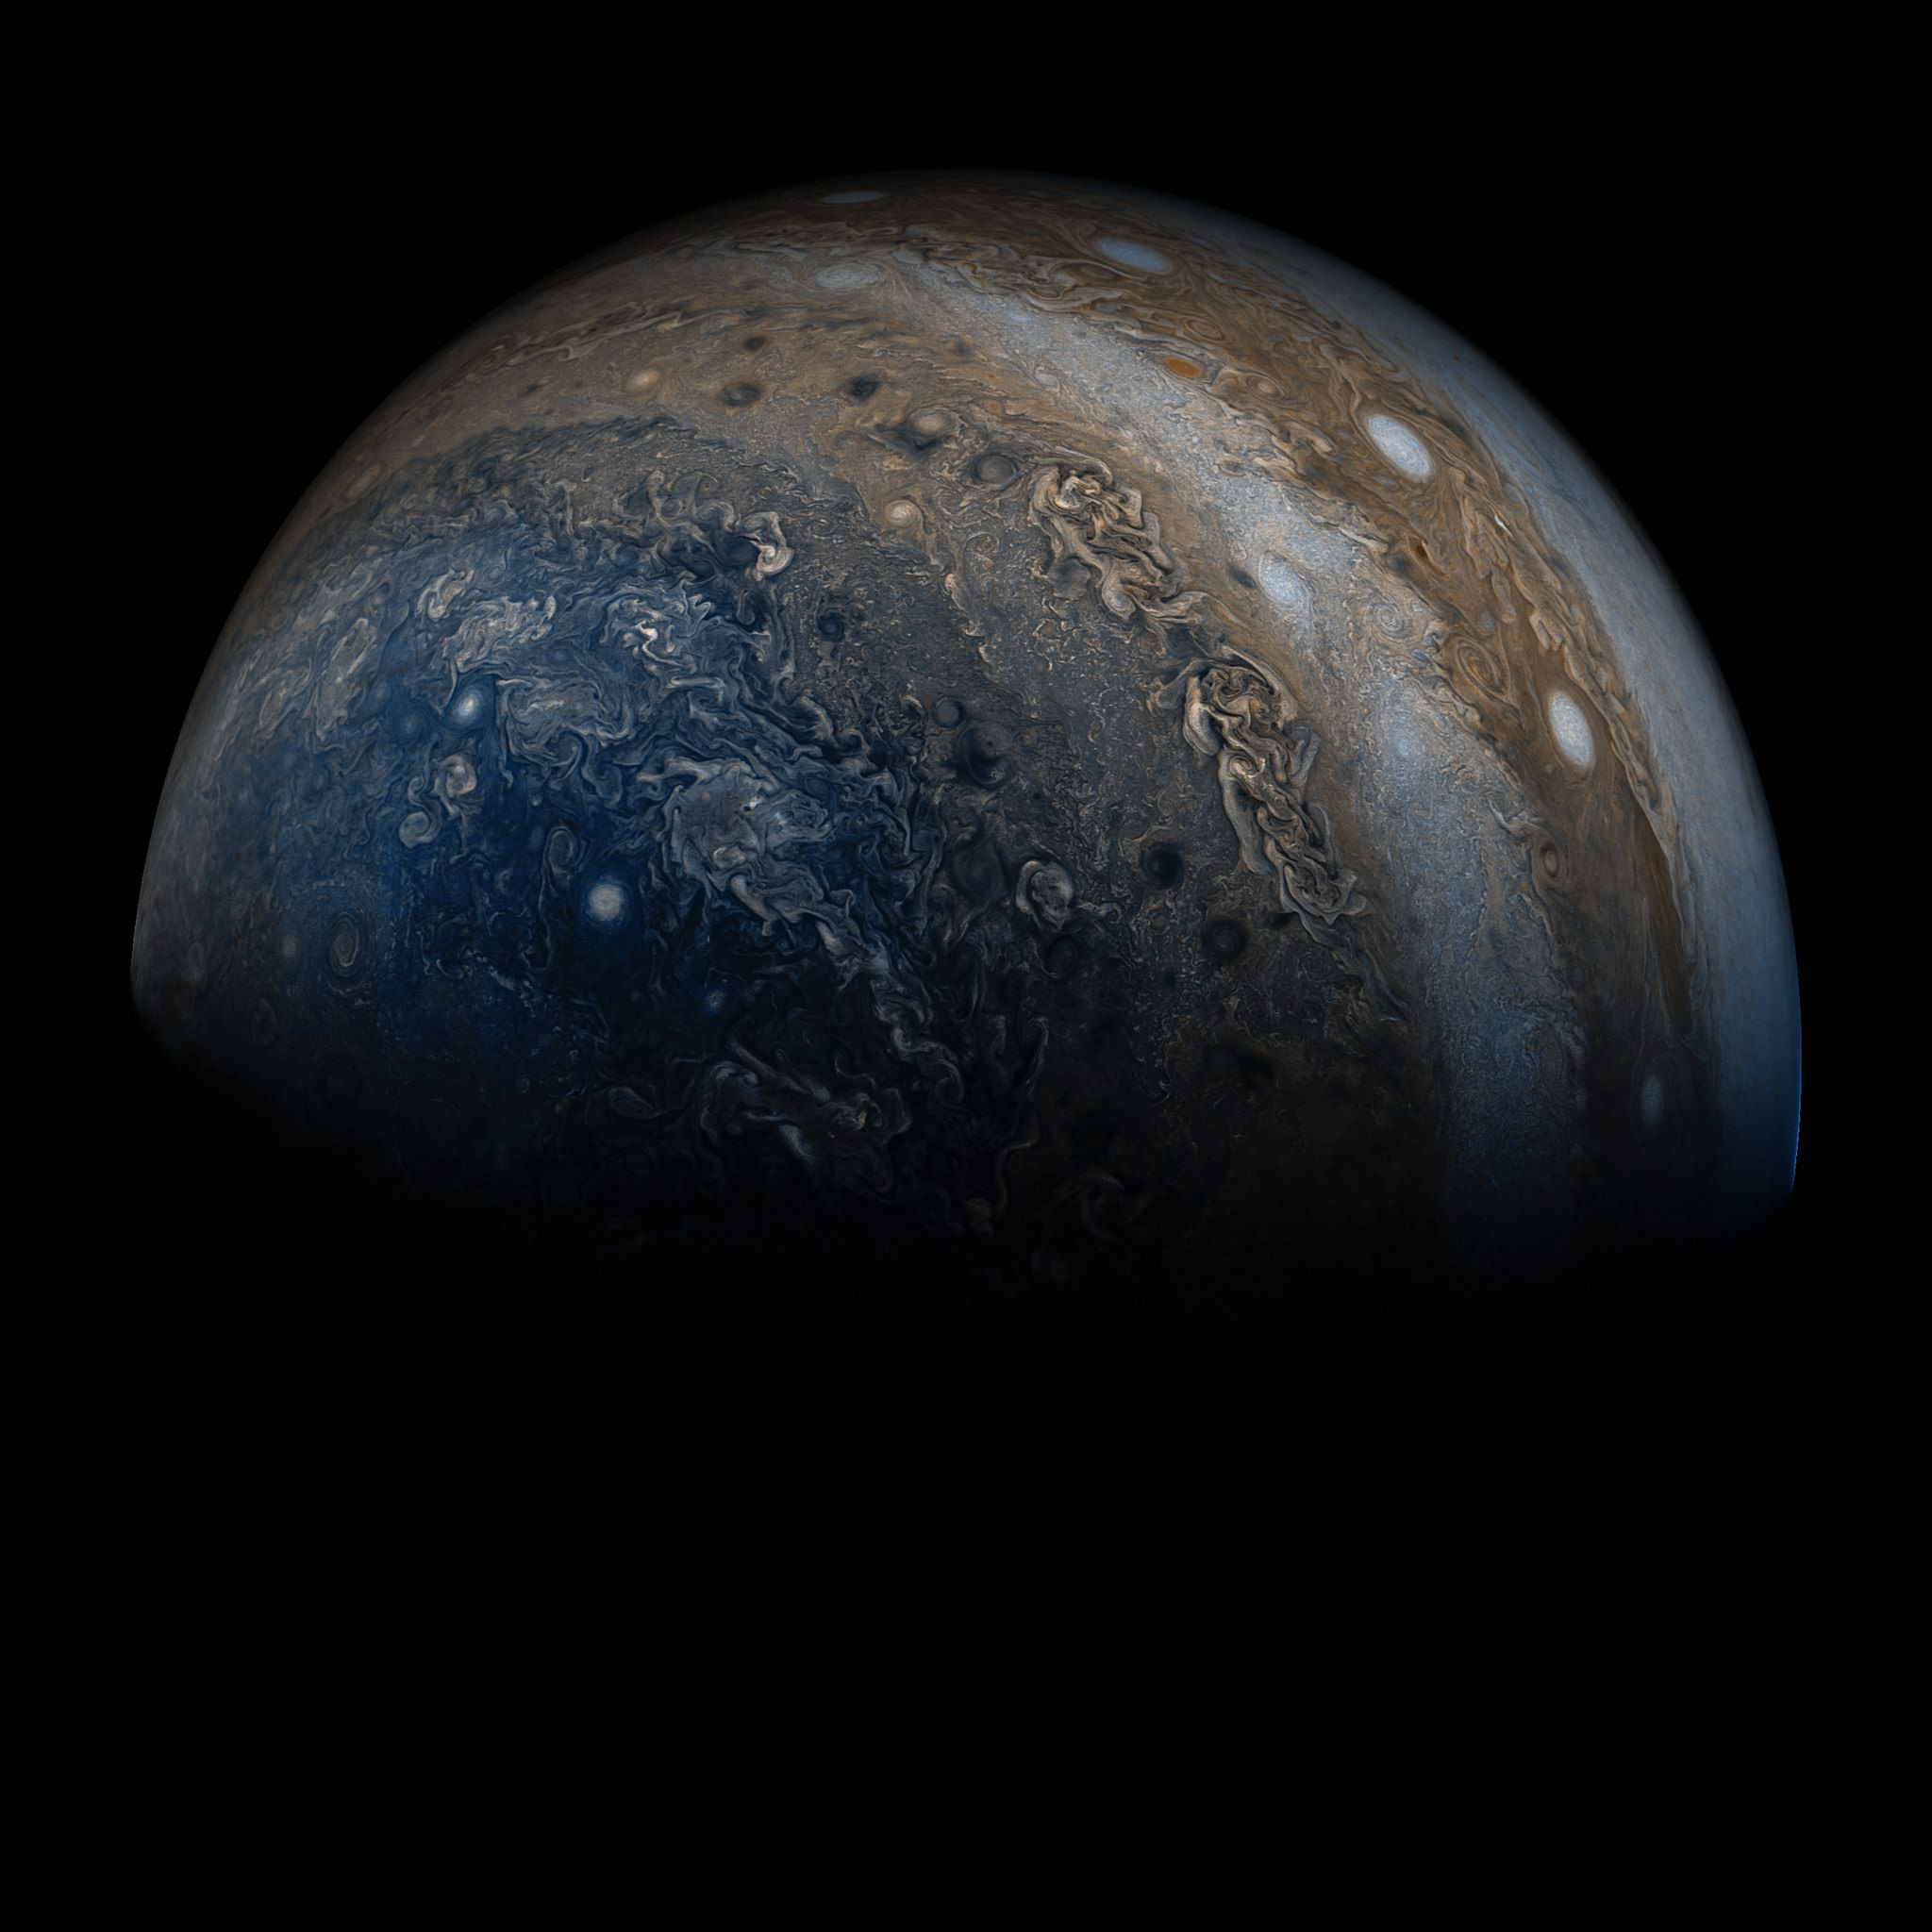 A Stormy Turbulent World New Science Results From Juno Reveal - Nasas juno spacecraft has captured incredible images of jupiters surface